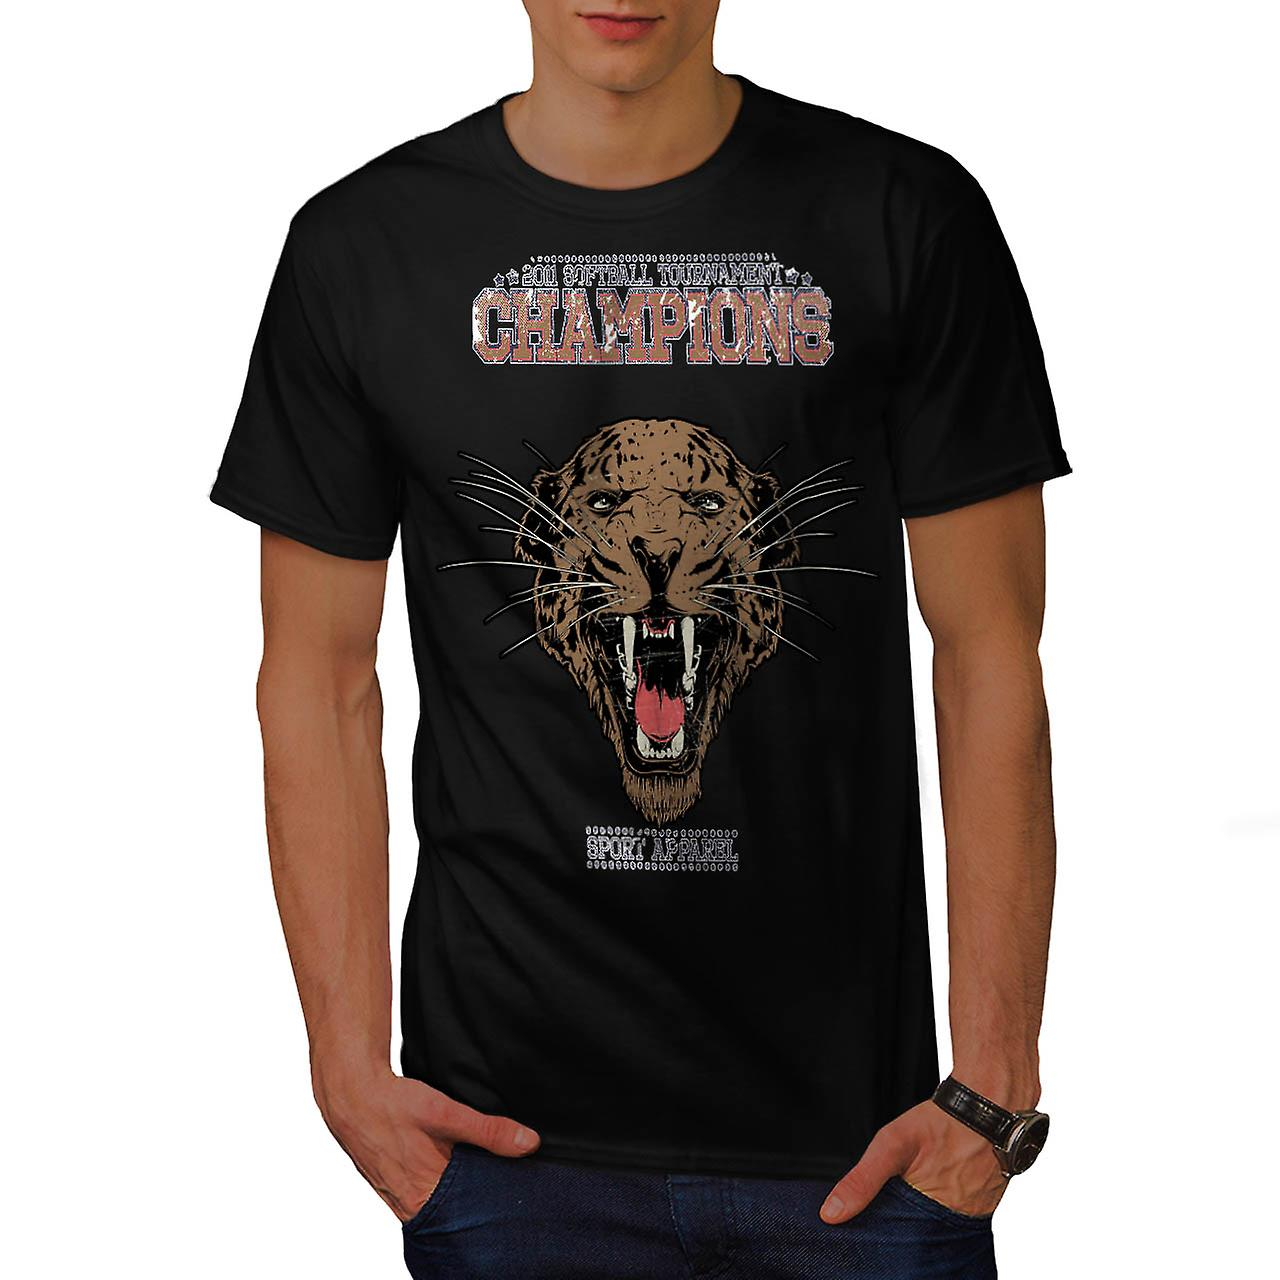 Cougar Sports Team Champions hommes T-shirt noir | Wellcoda